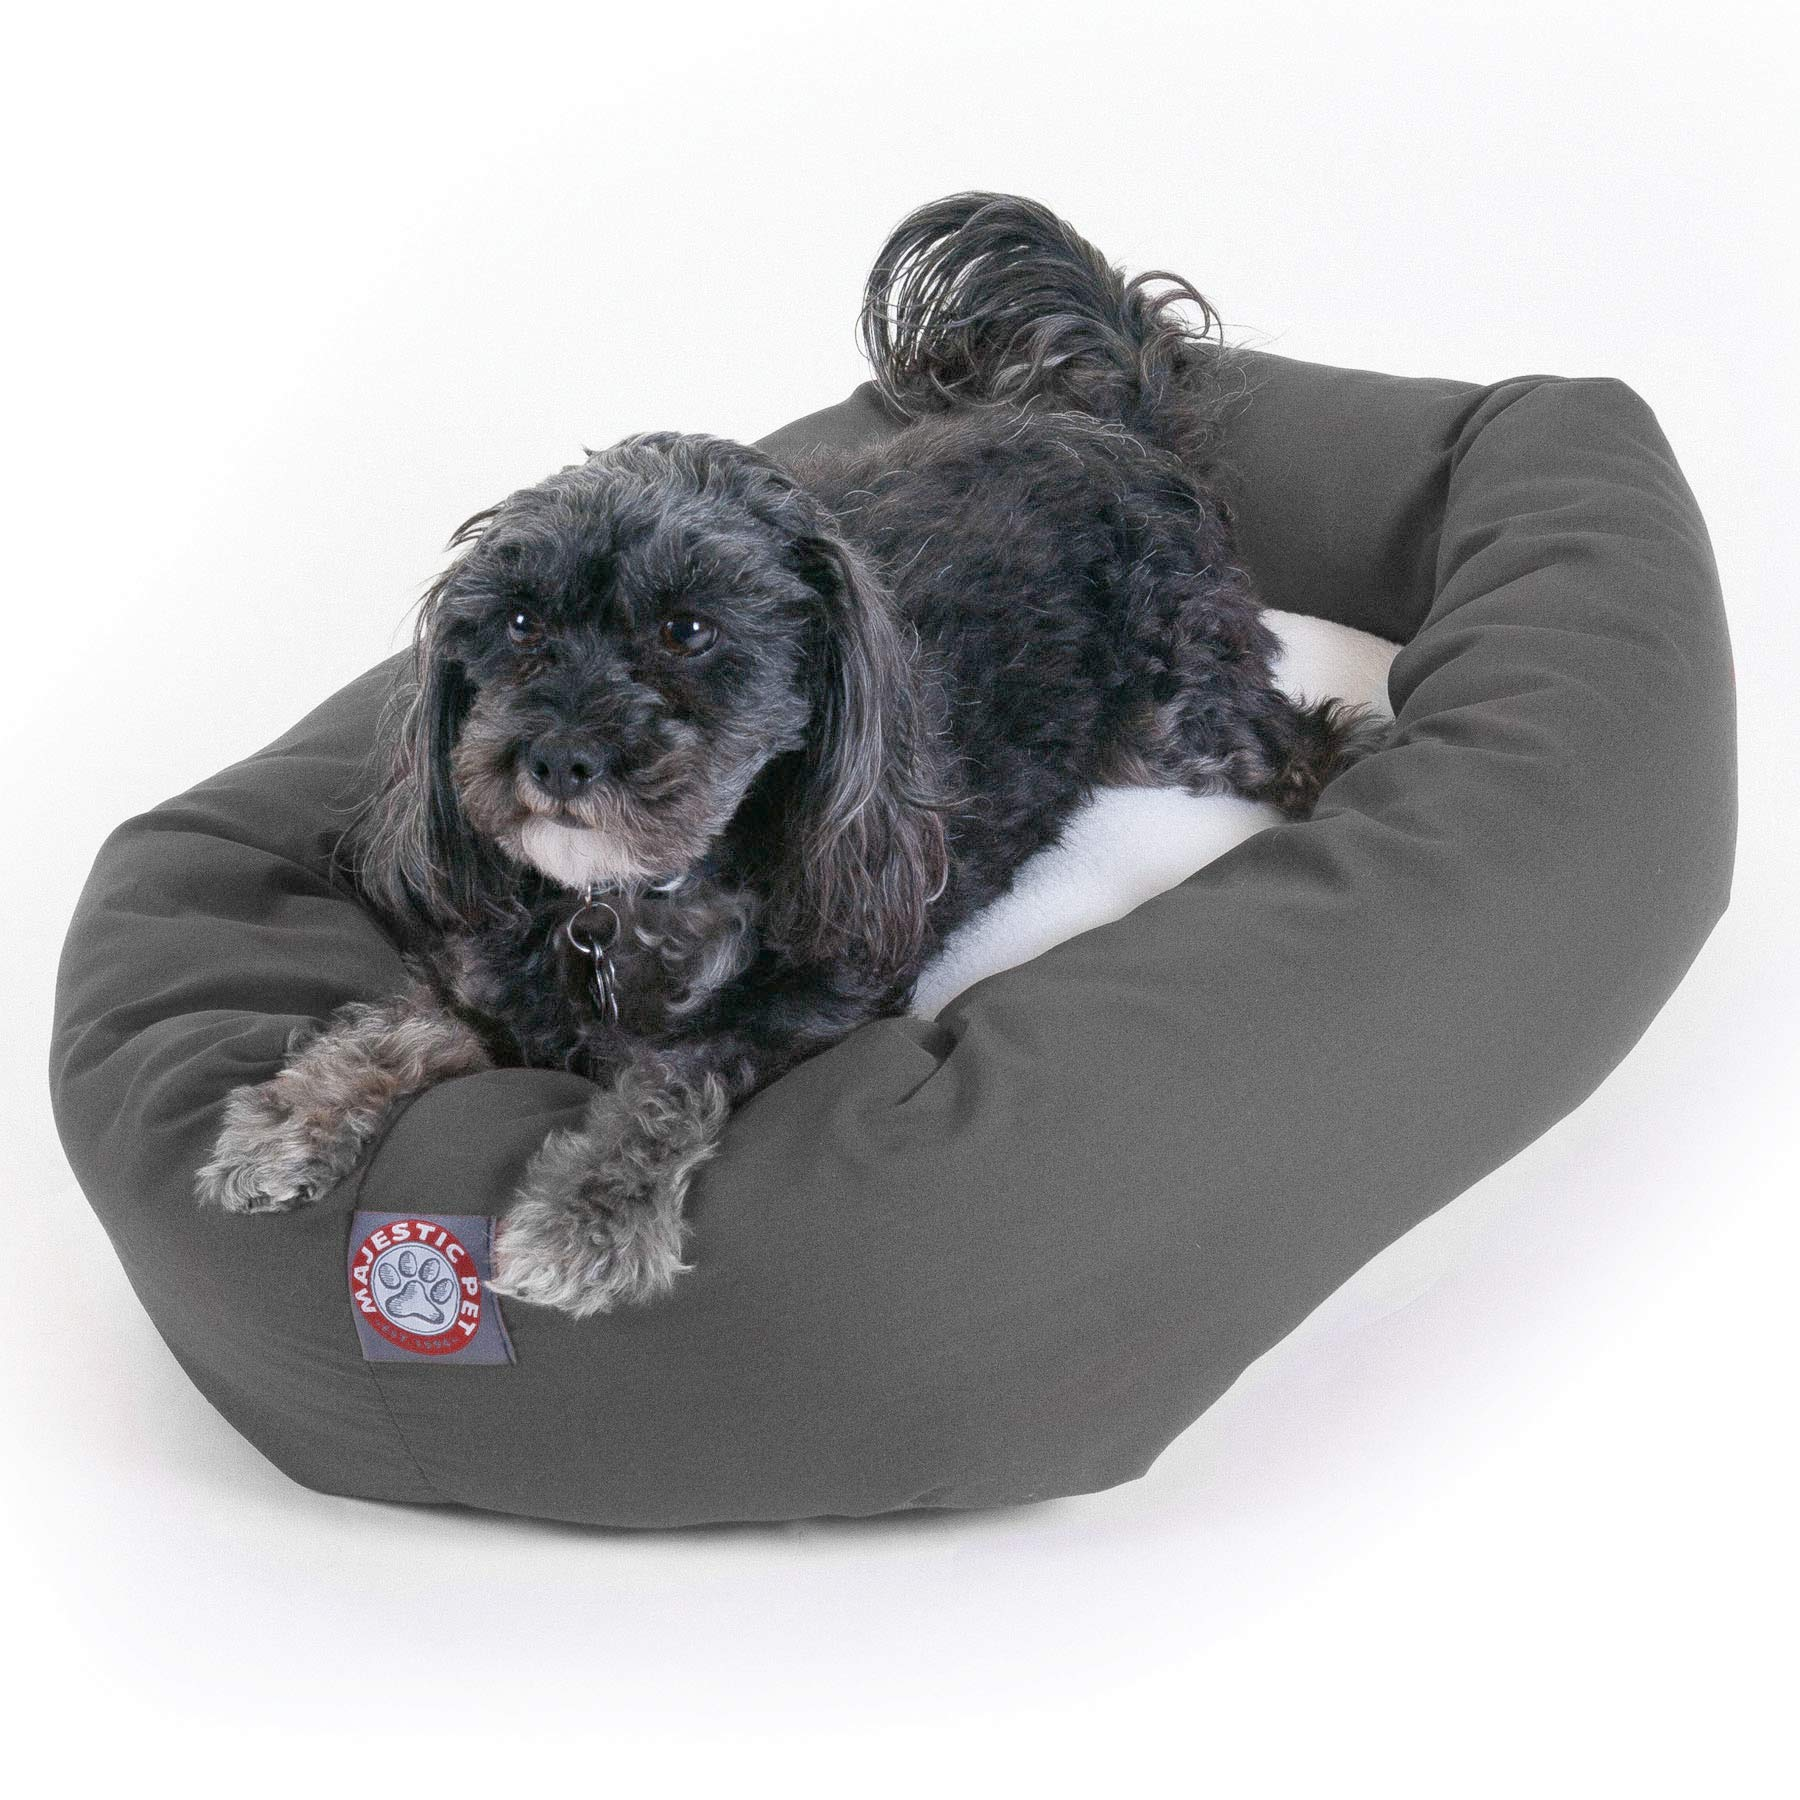 Majestic Pet 24'' Gray Bagel Dog Bed with Sherpa Center